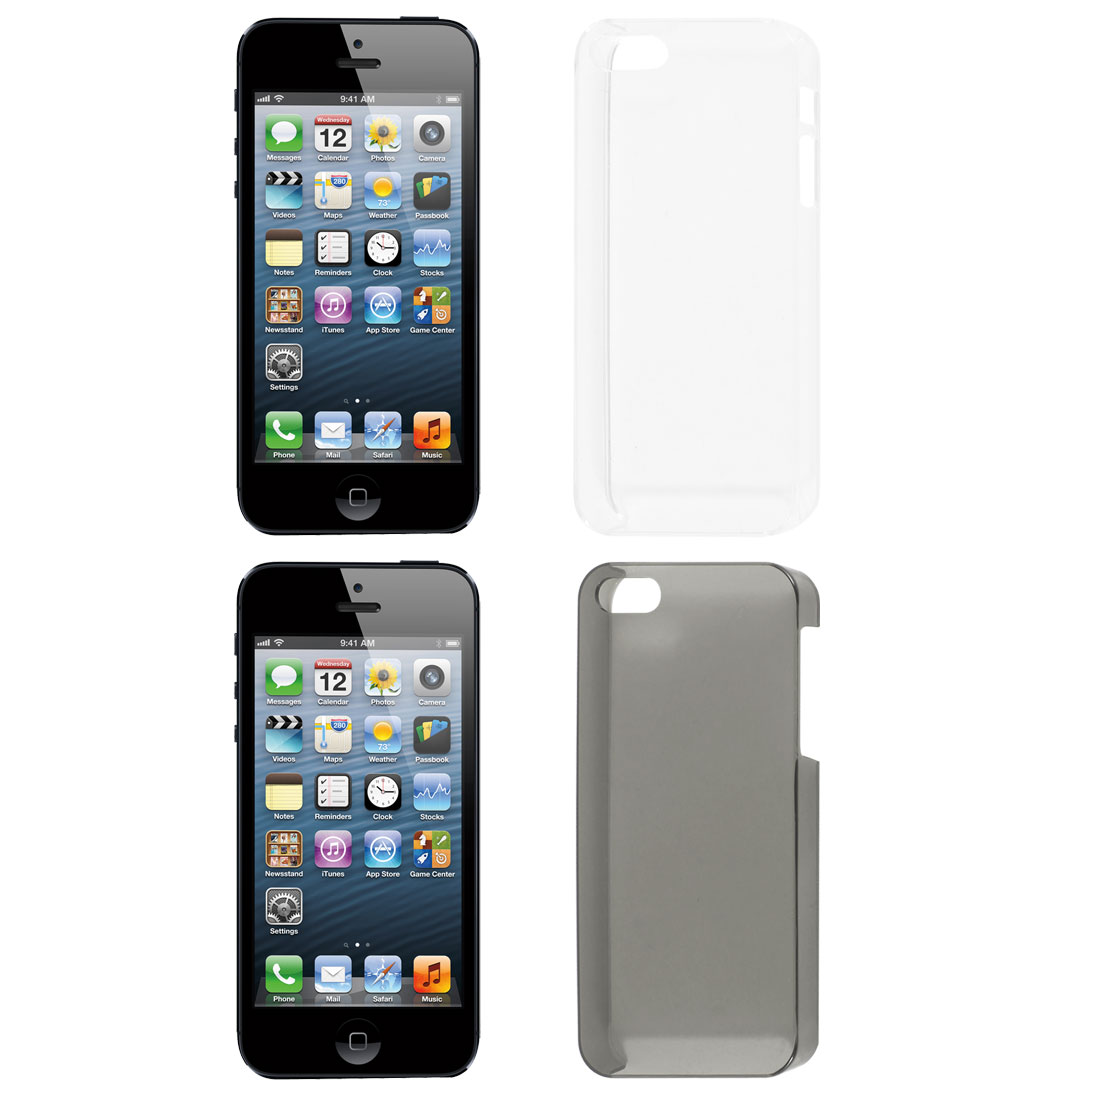 2 Pcs Dark Gray Clear Hard Back Case Cover for Apple iPhone 5 5G